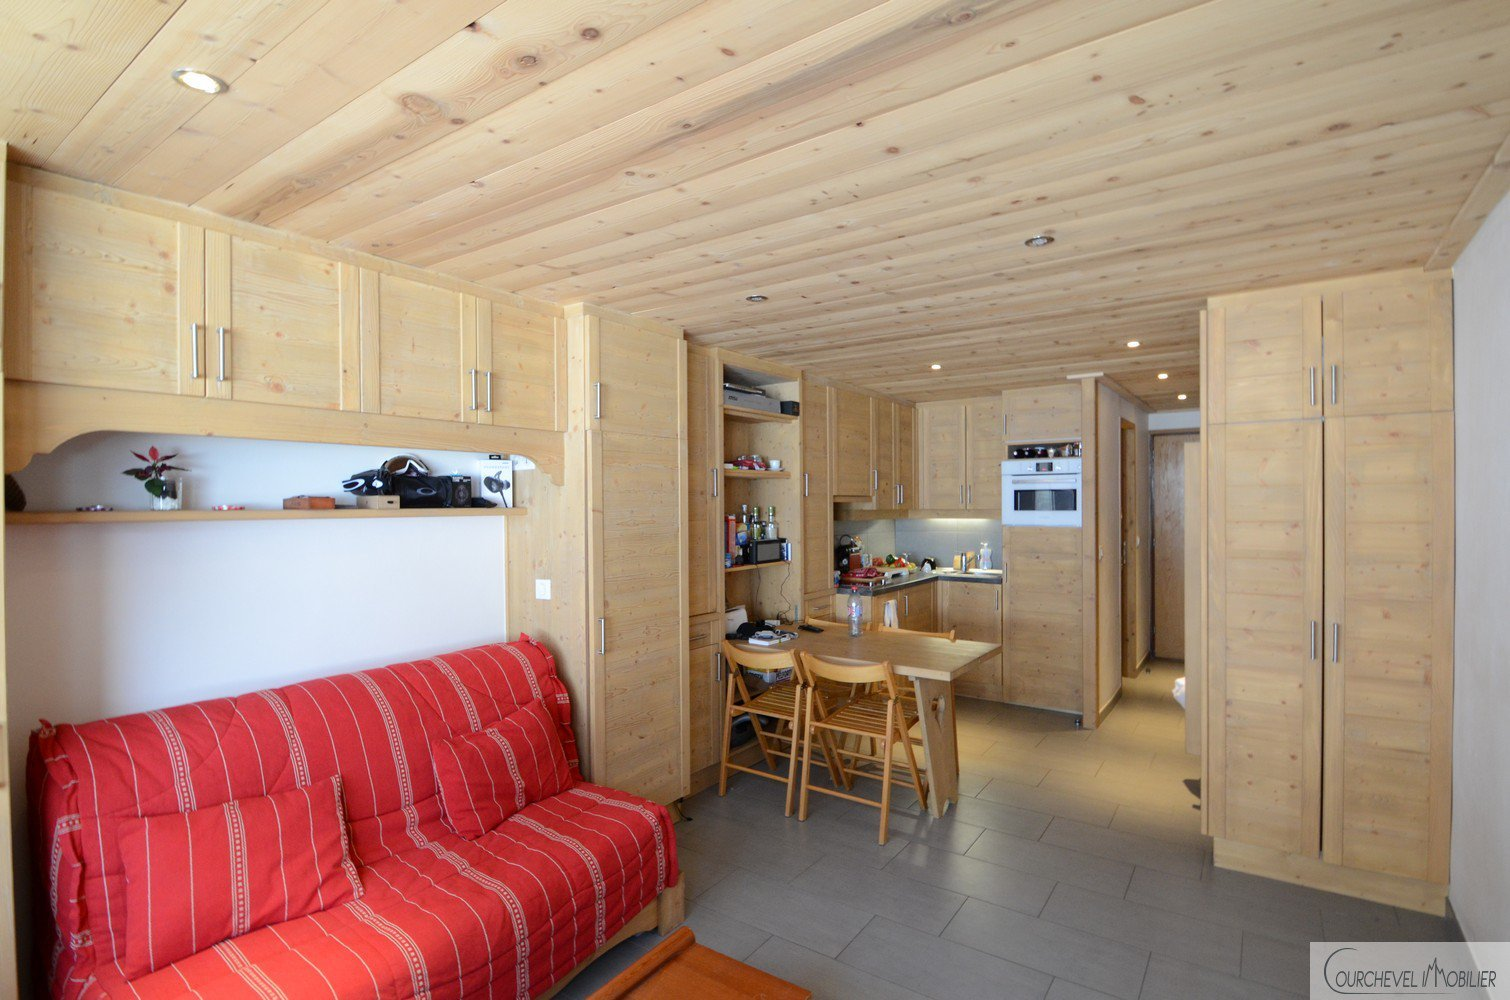 Seasonal rental Apartment - Courchevel Village 1550